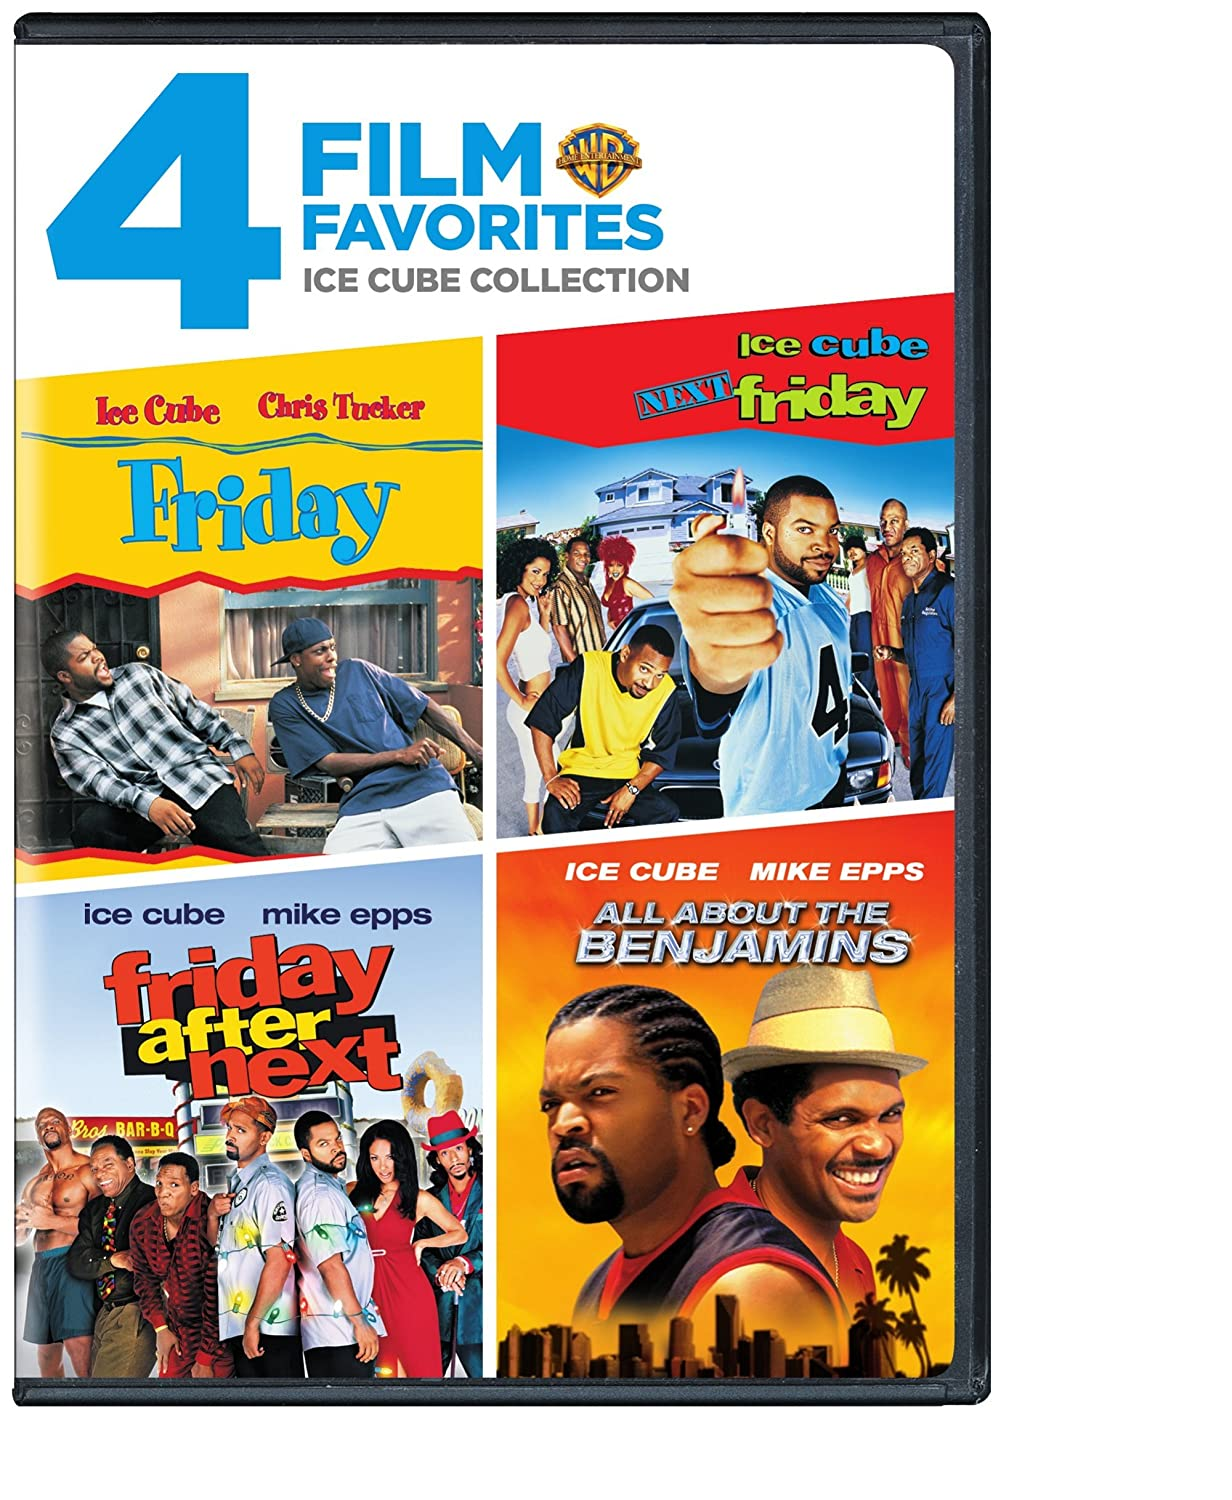 Amazon.com: 4 Film Favorites: Ice Cube (All About the Benjamins ...